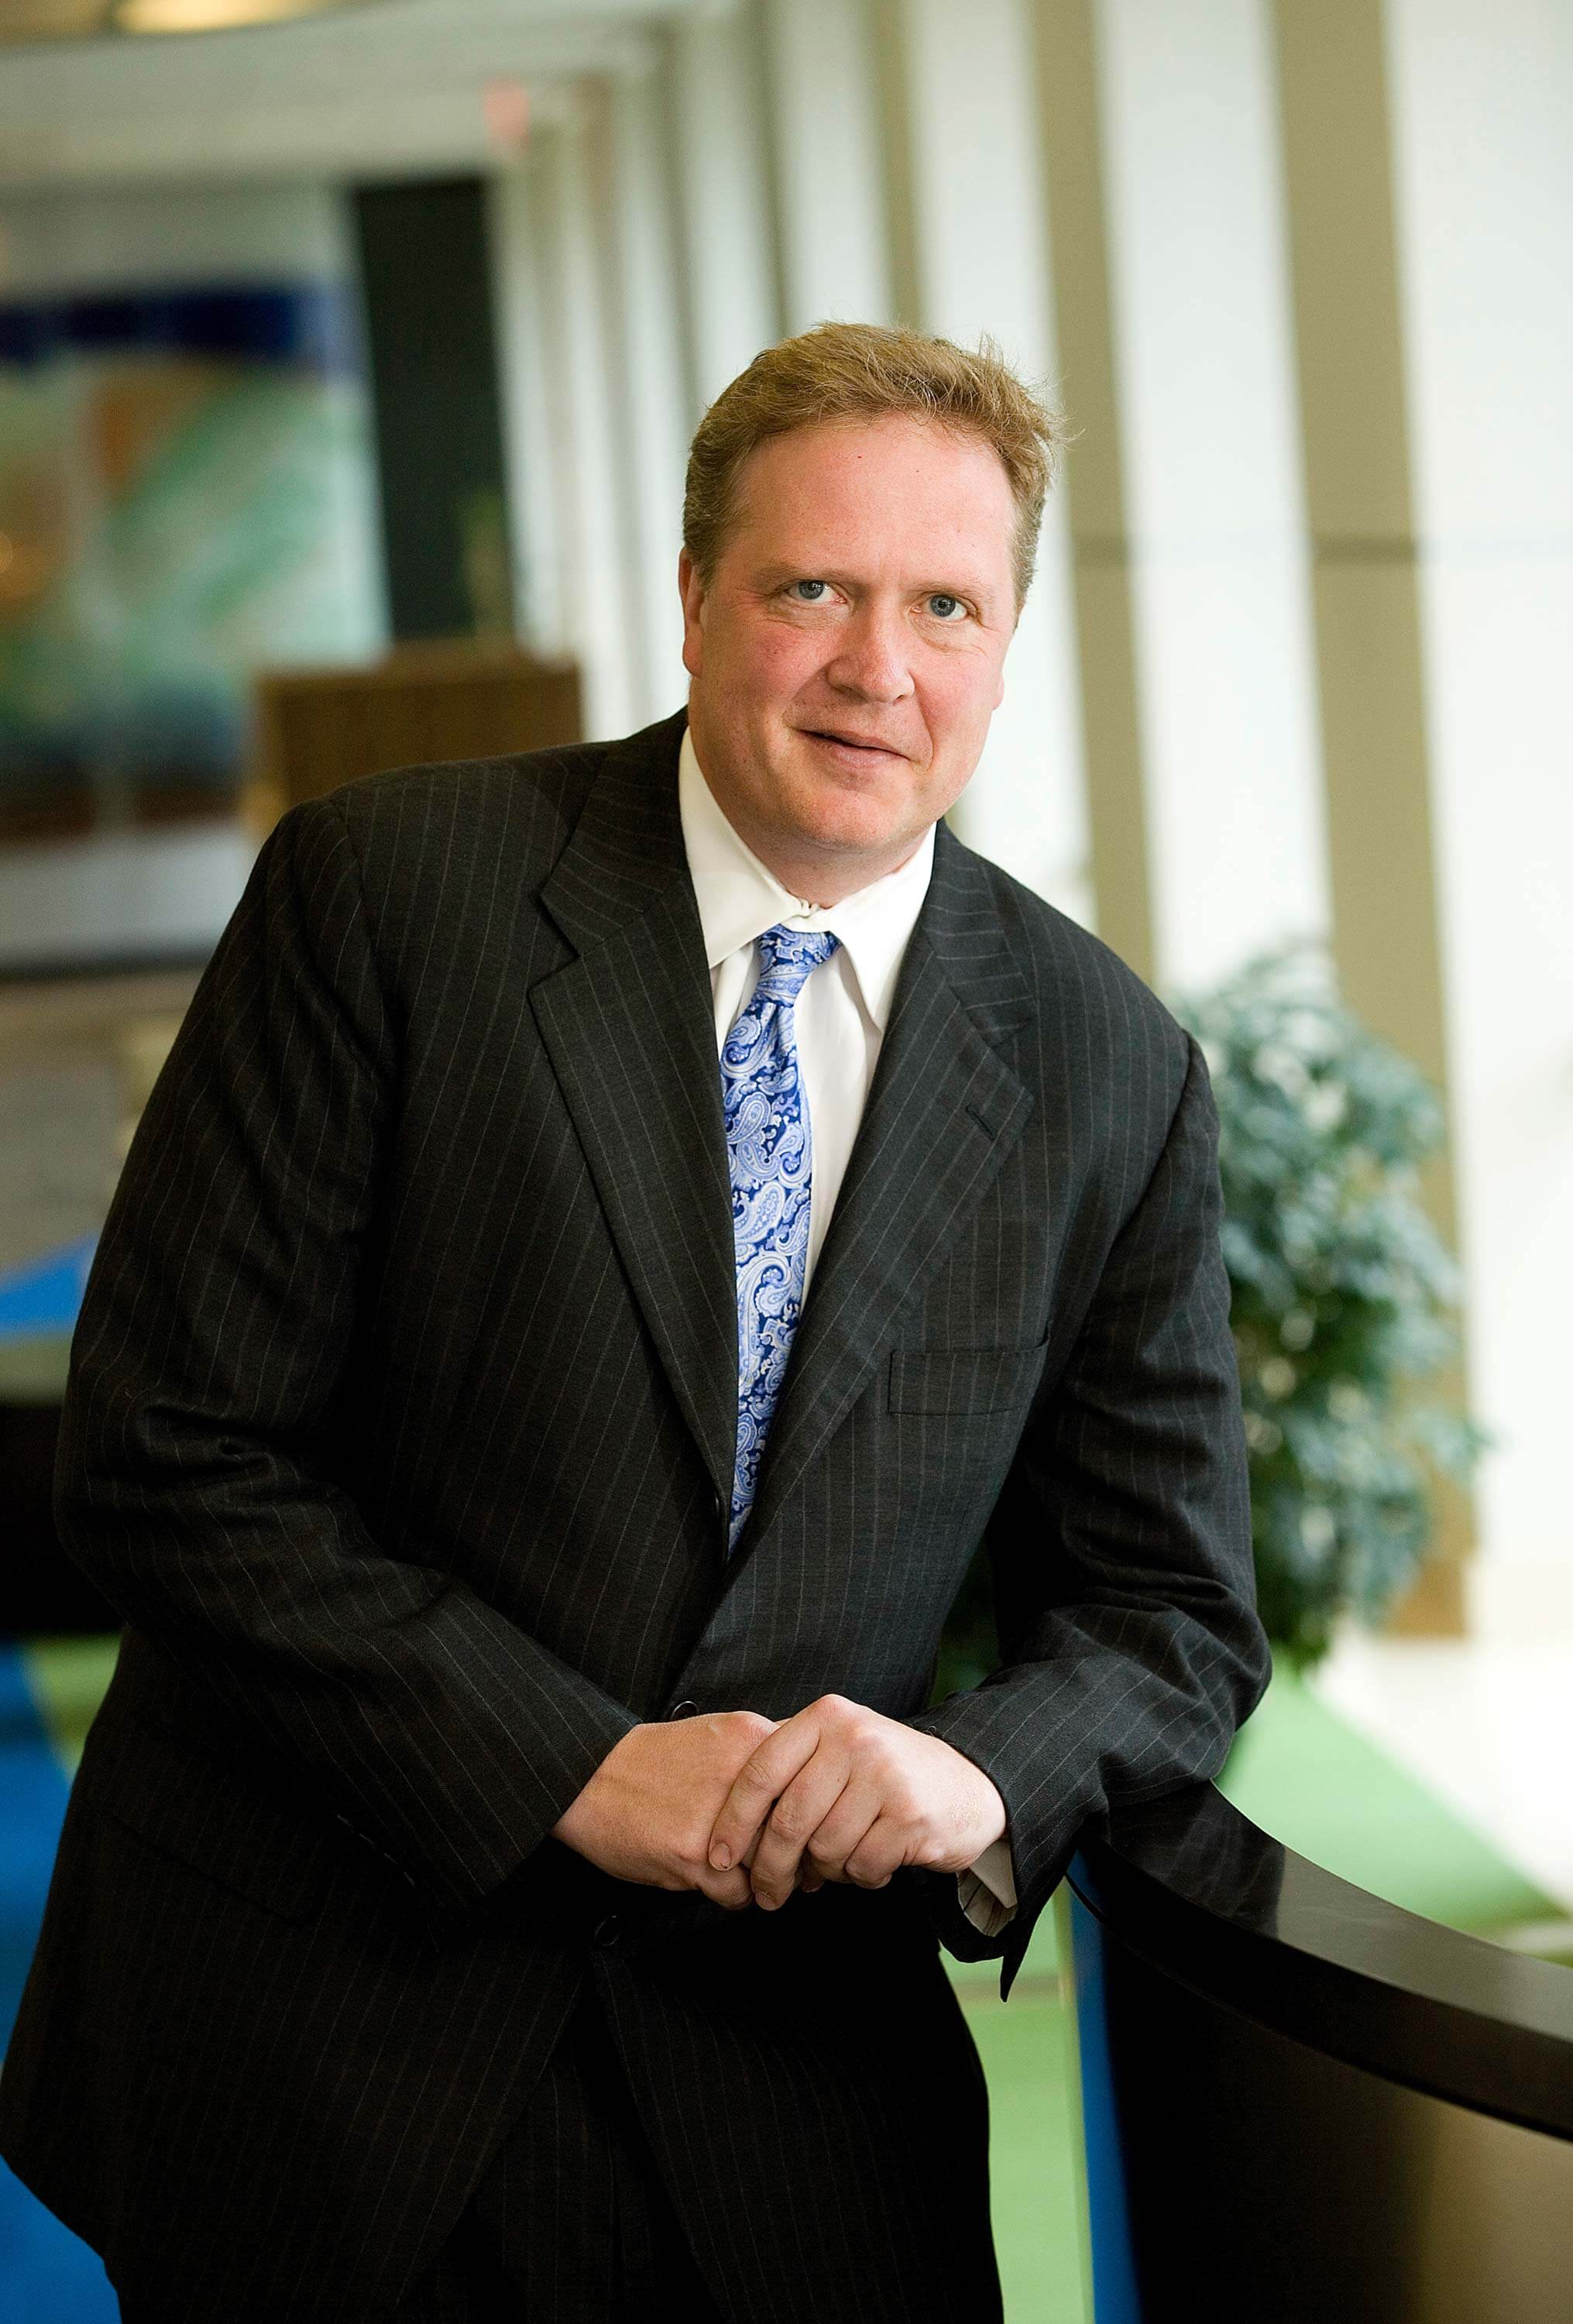 P&G taps Jon Moeller as new CEO, will replace David Taylor in November